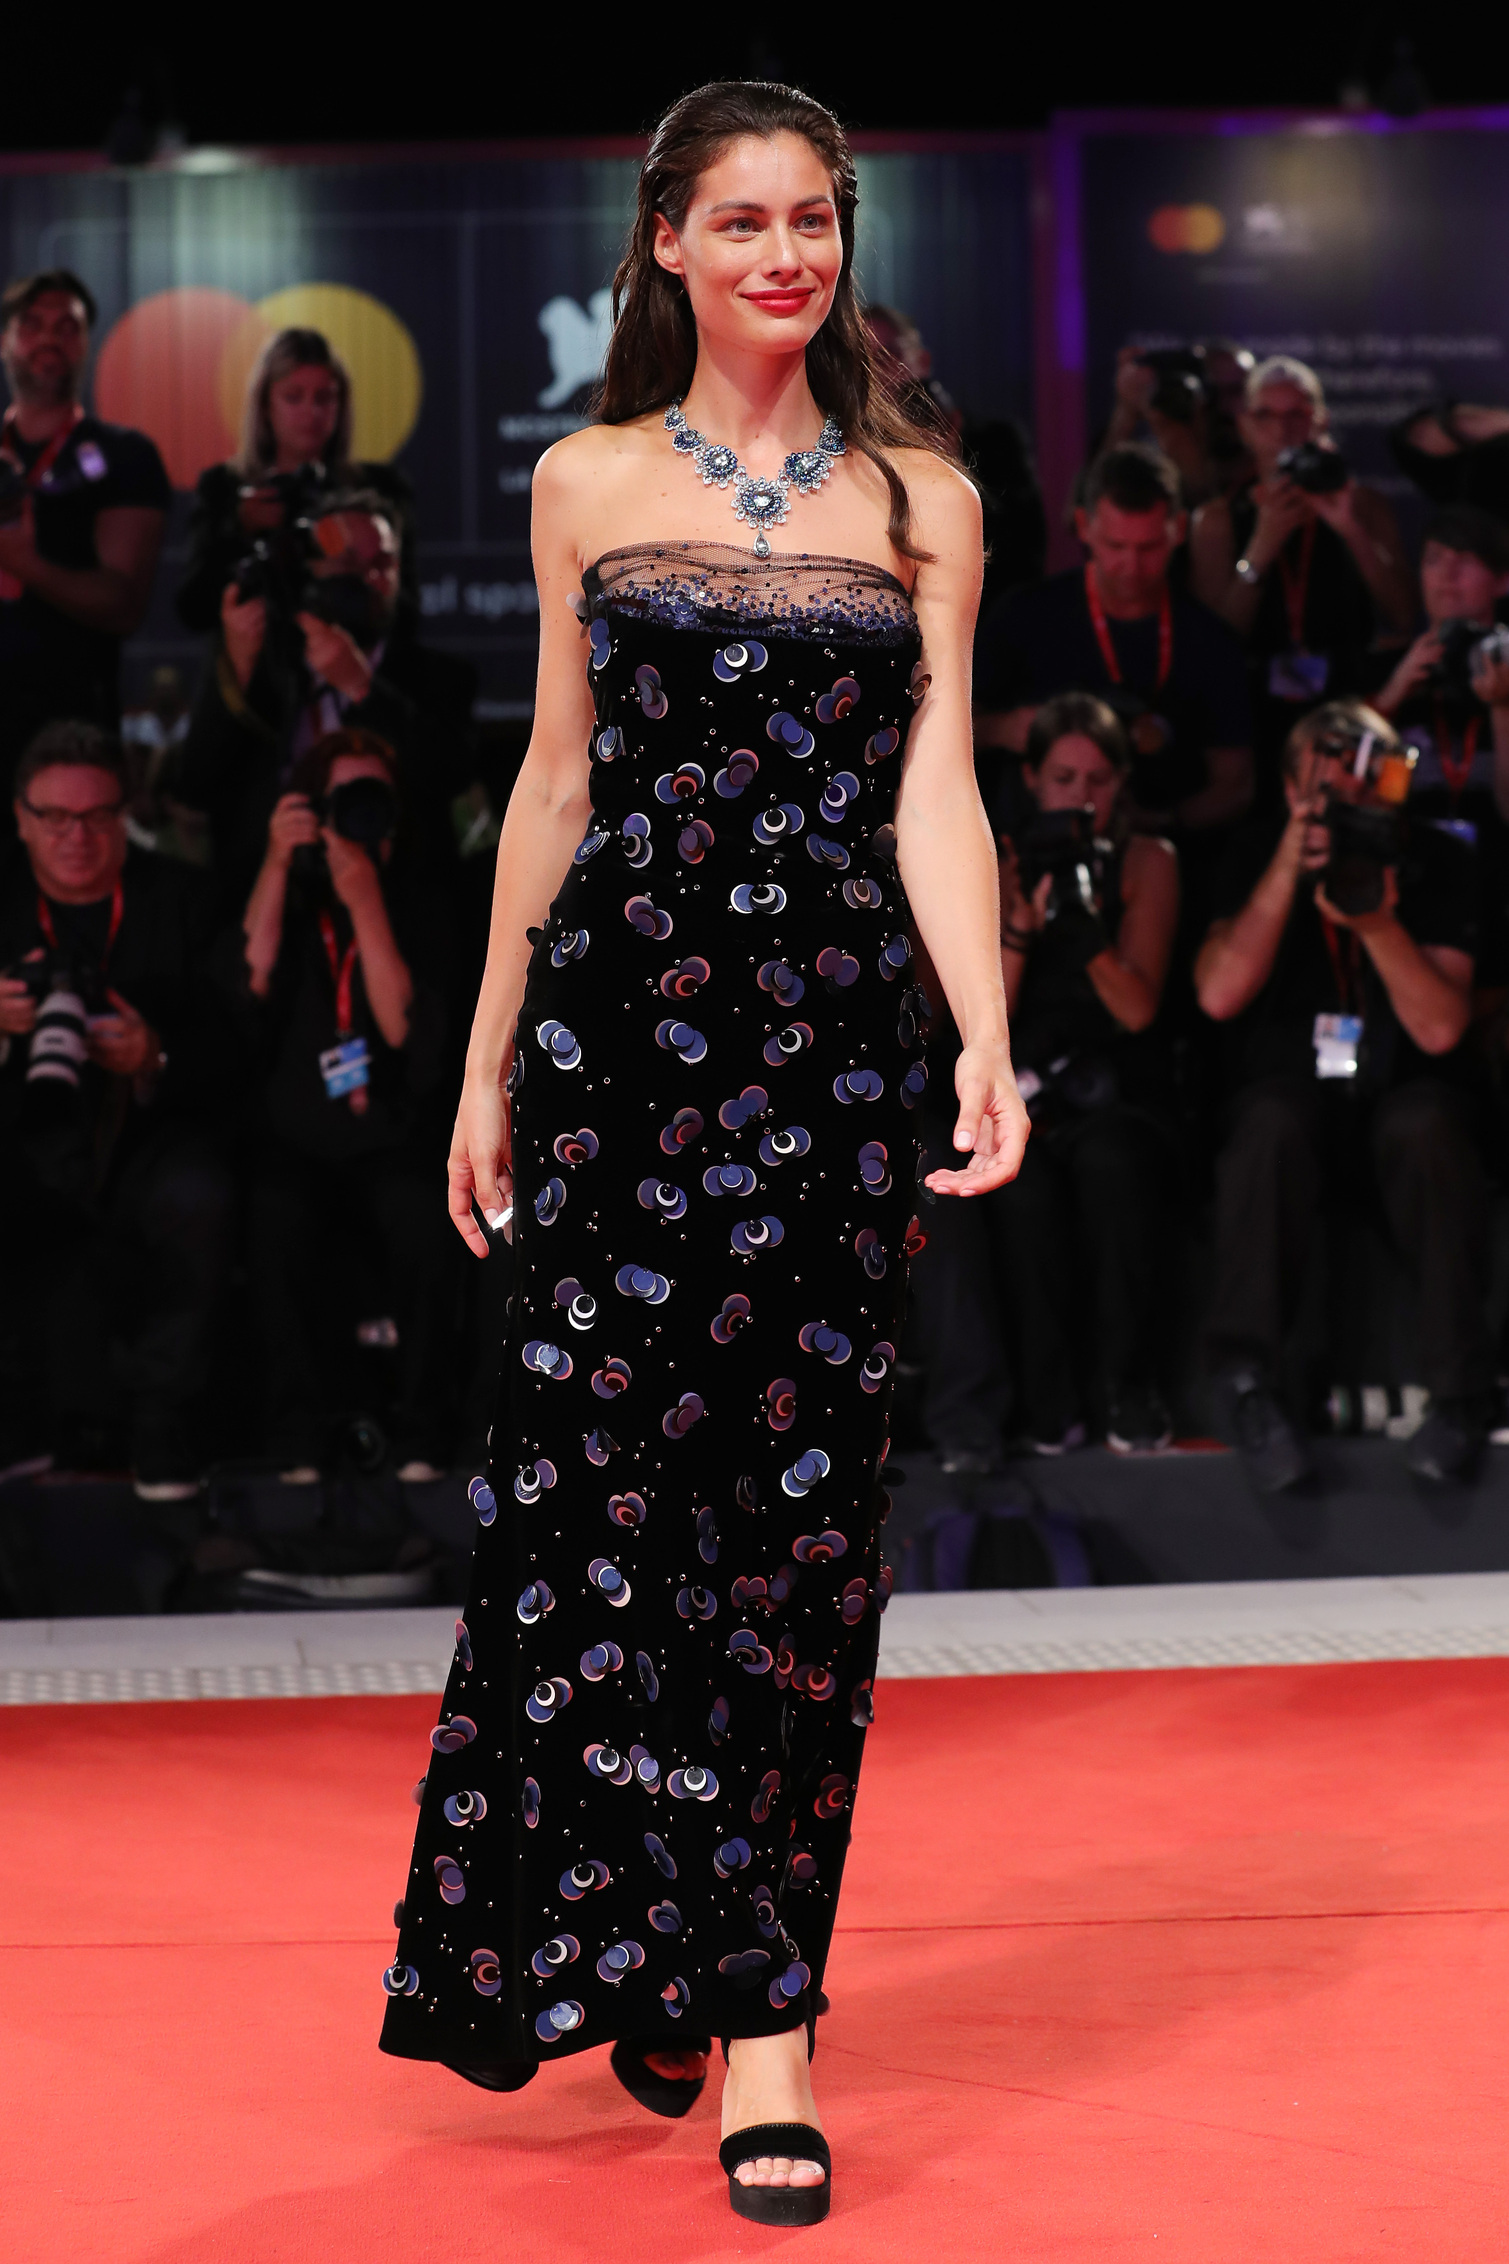 VENICE, ITALY - AUGUST 30:  Marica Pellegrinelli walks the red carpet ahead of the